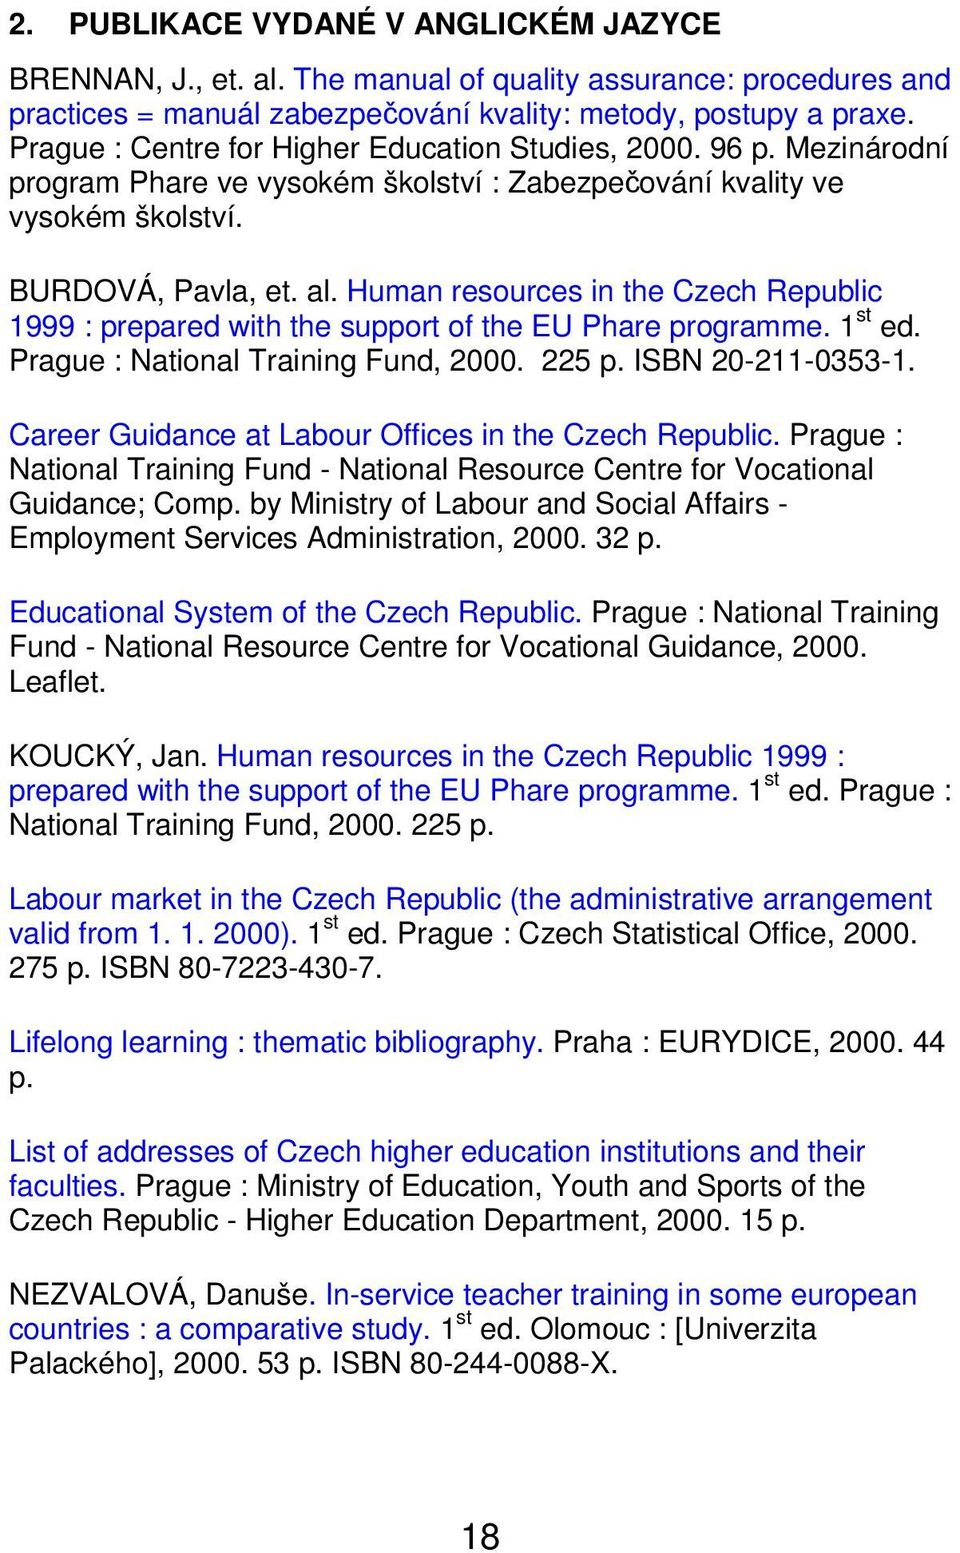 Human resources in the Czech Republic 1999 : prepared with the support of the EU Phare programme. 1 st ed. Prague : National Training Fund, 2000. 225 p. ISBN 20-211-0353-1.